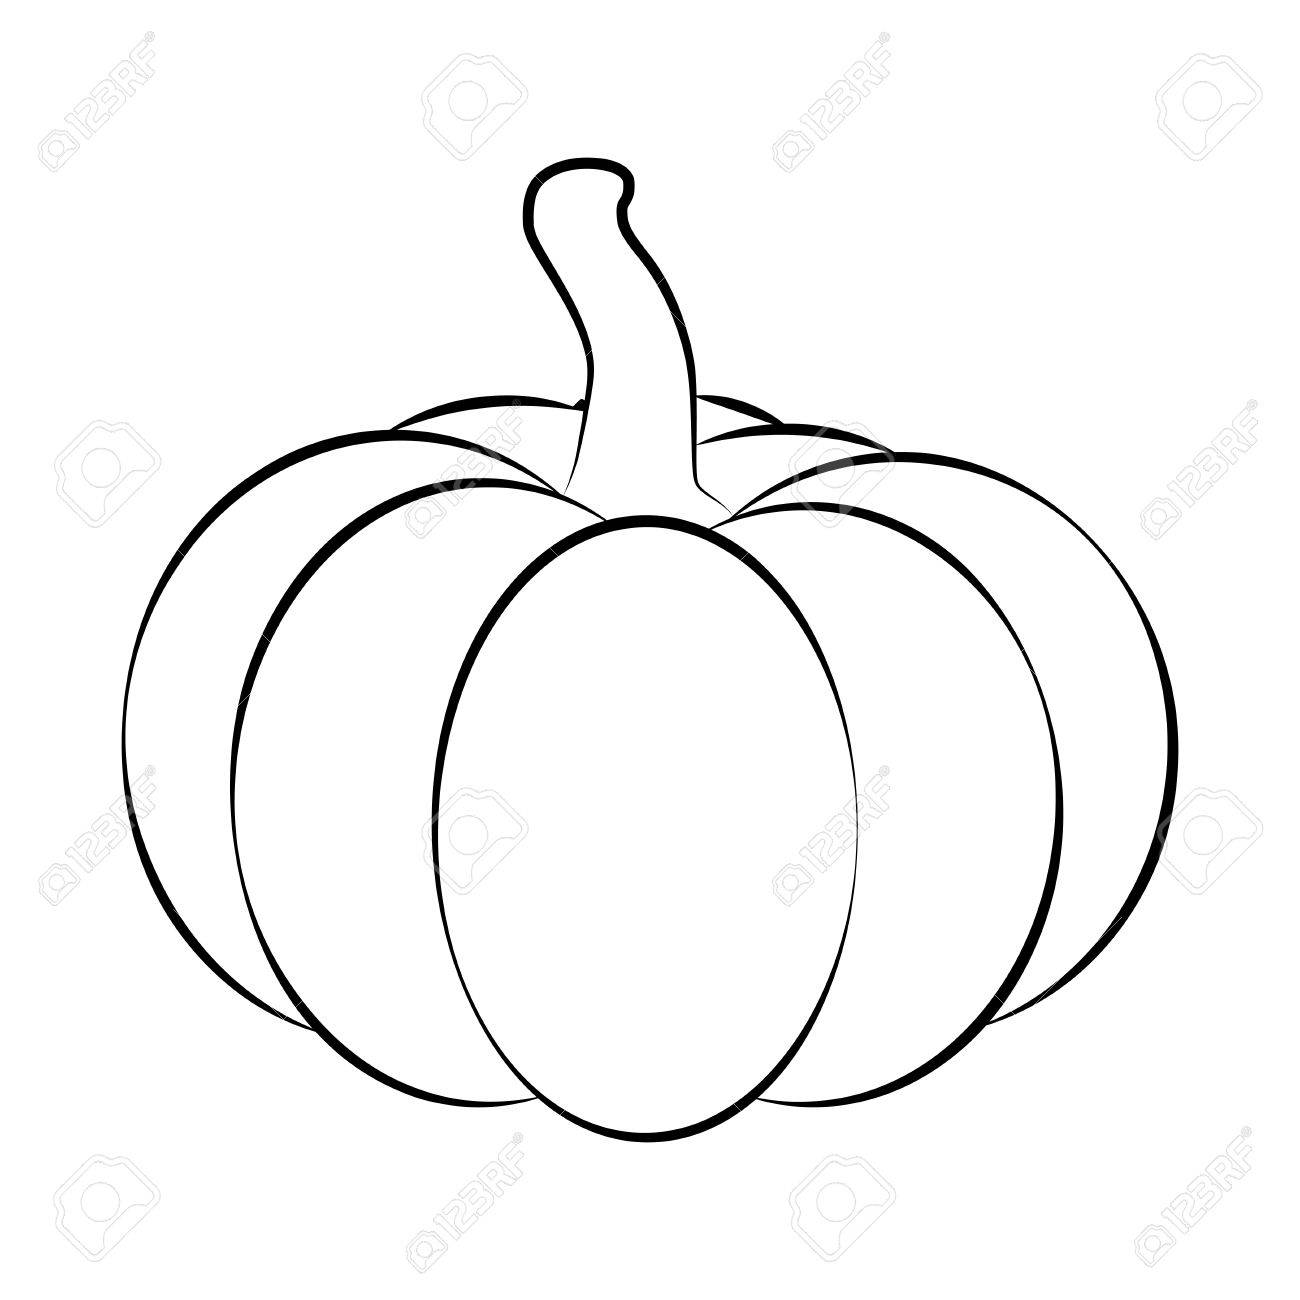 Halloween Pumpkin Outline Contour Vector Illustration Isolated